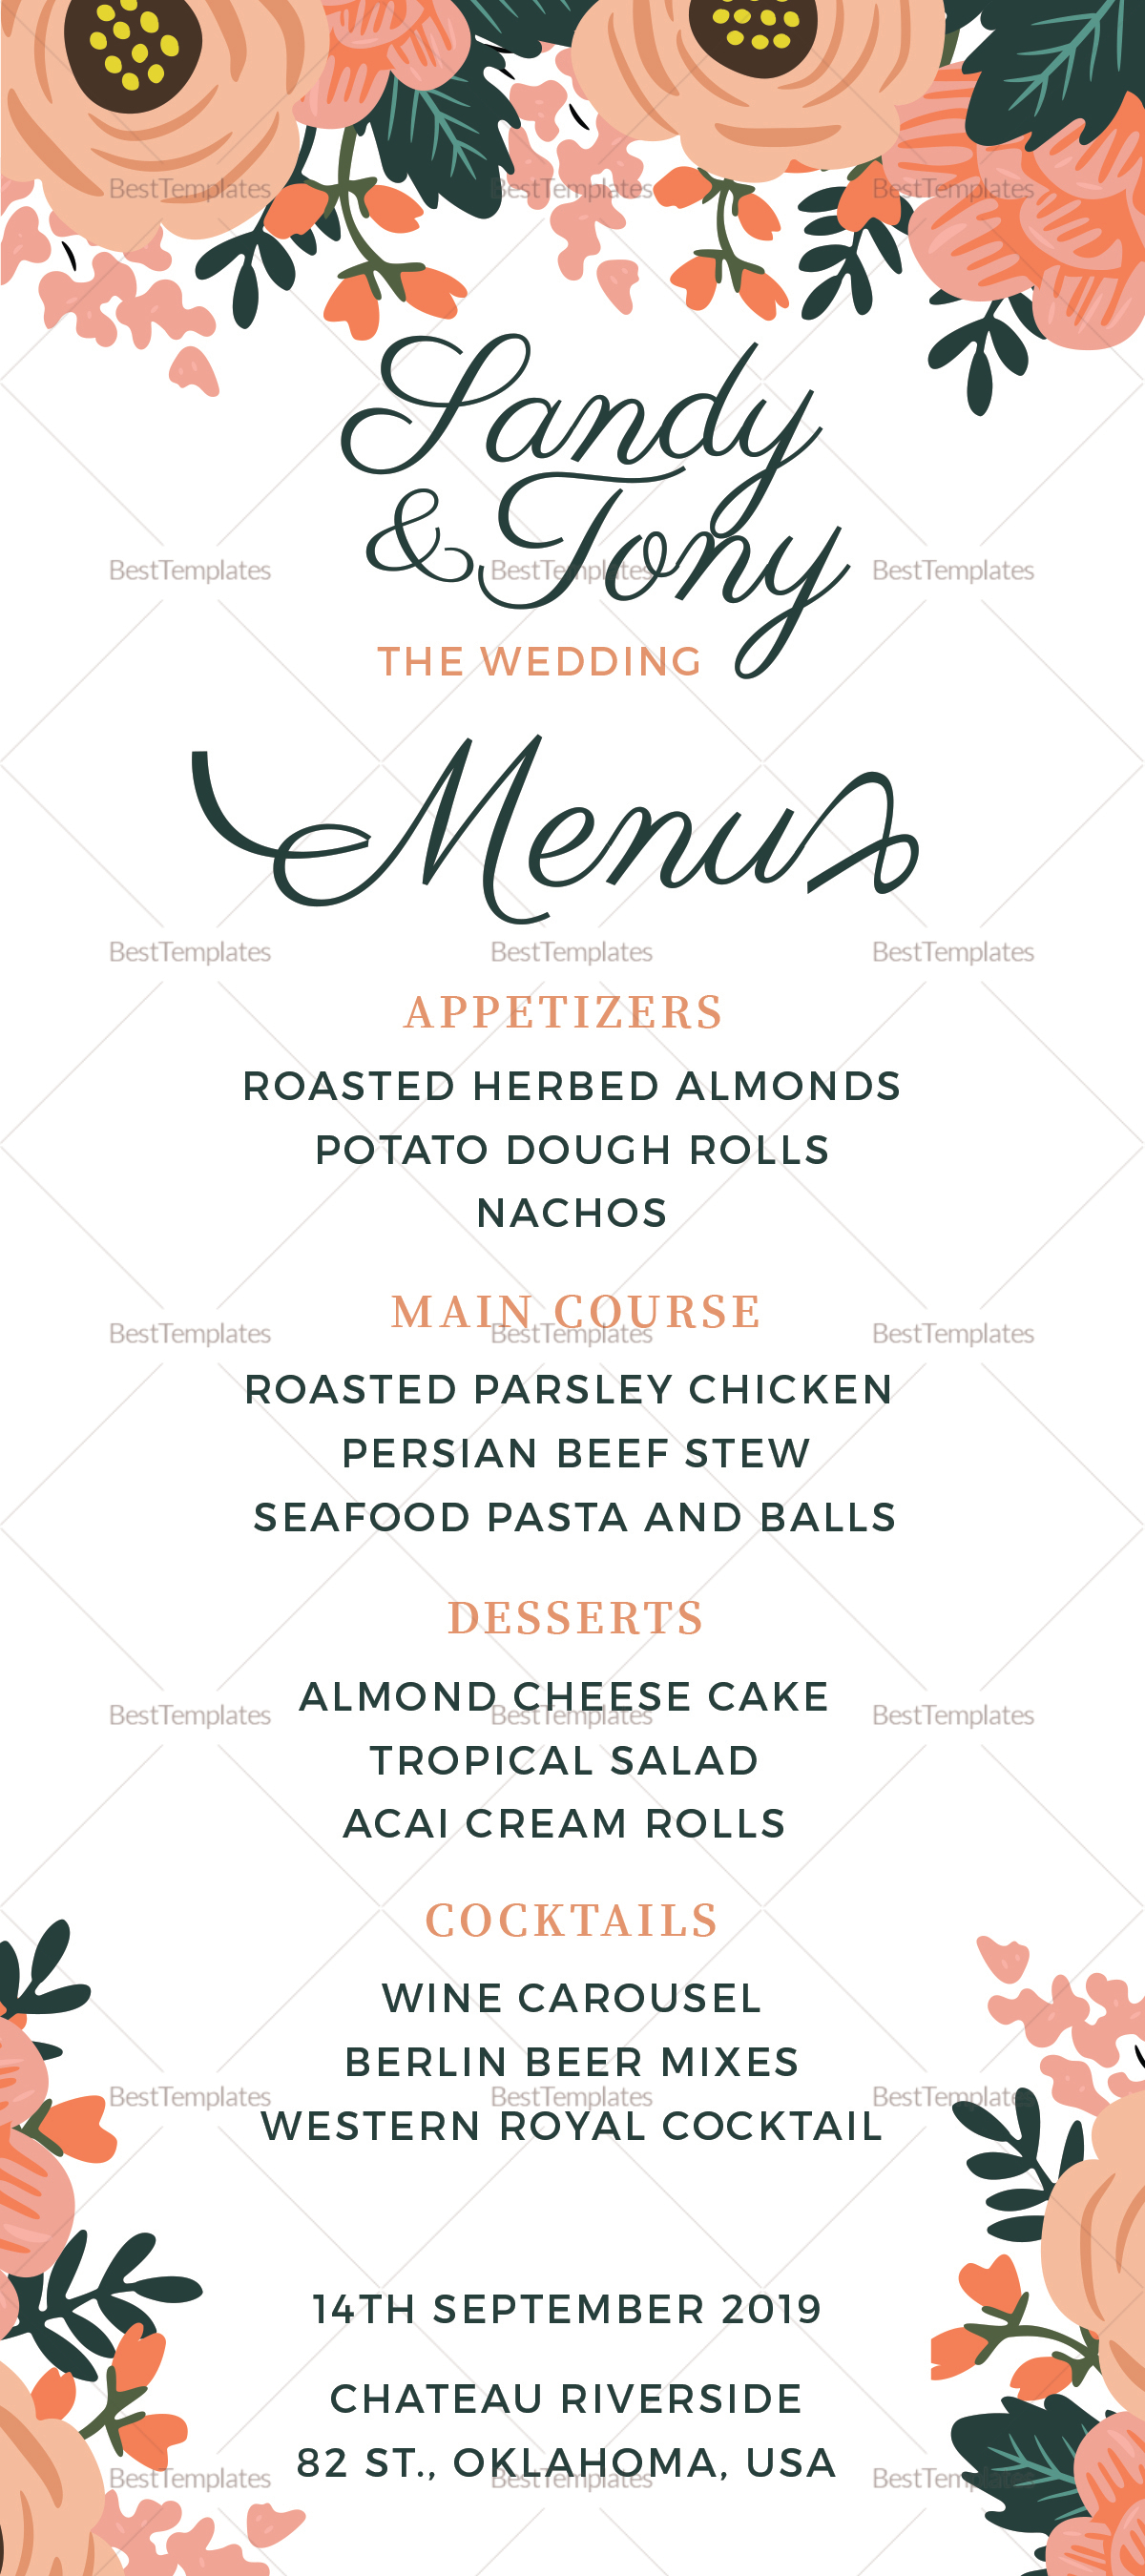 Wedding Menu Design Template